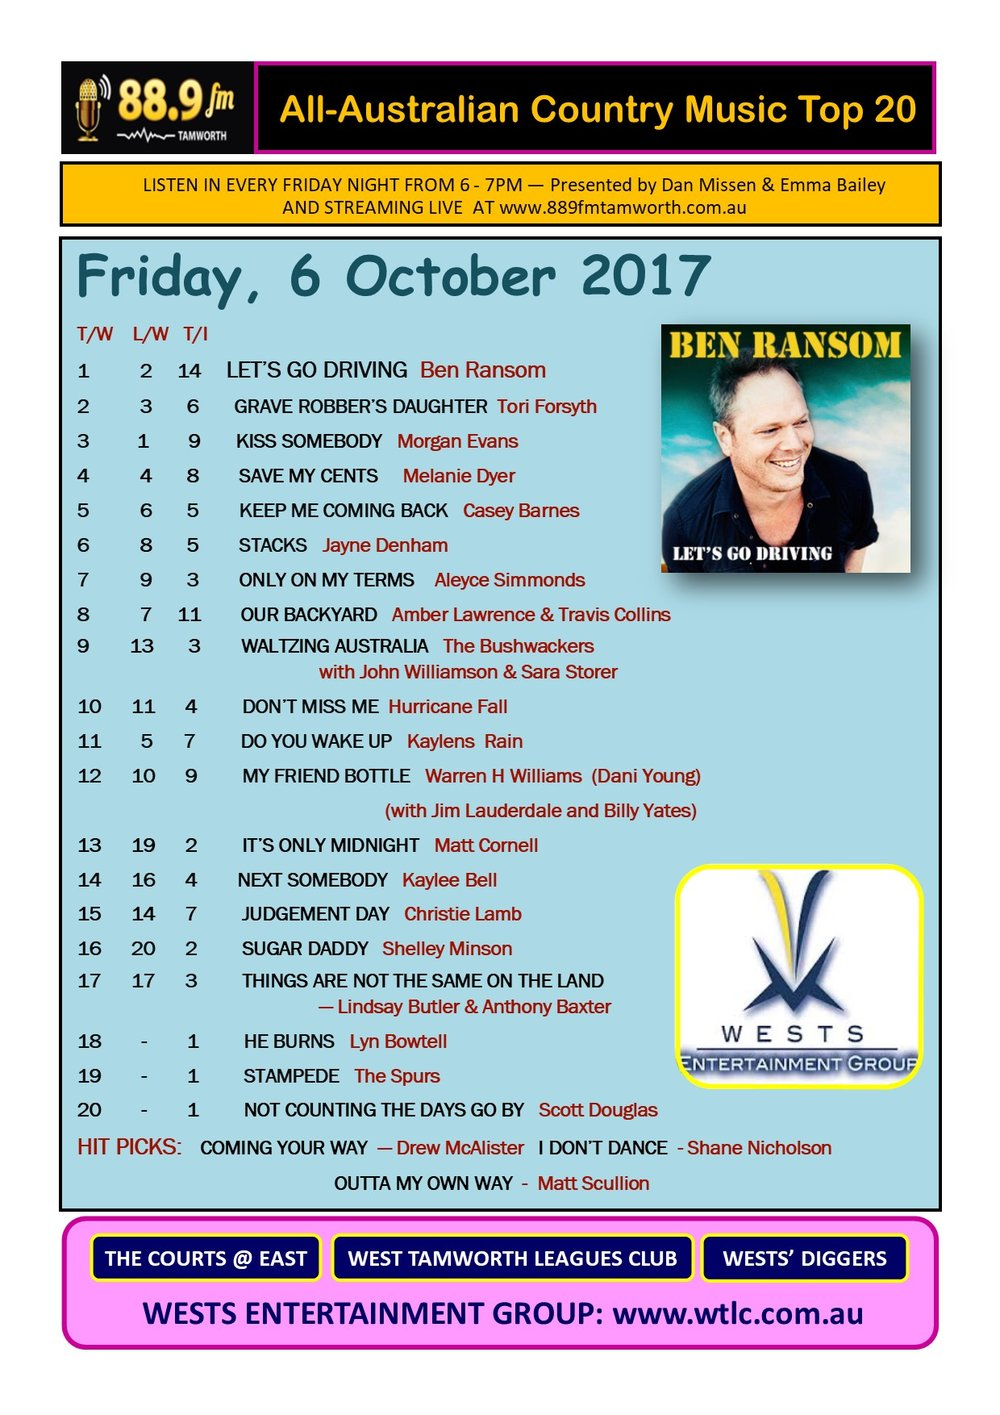 Australian Country Music Top 20 - October 6